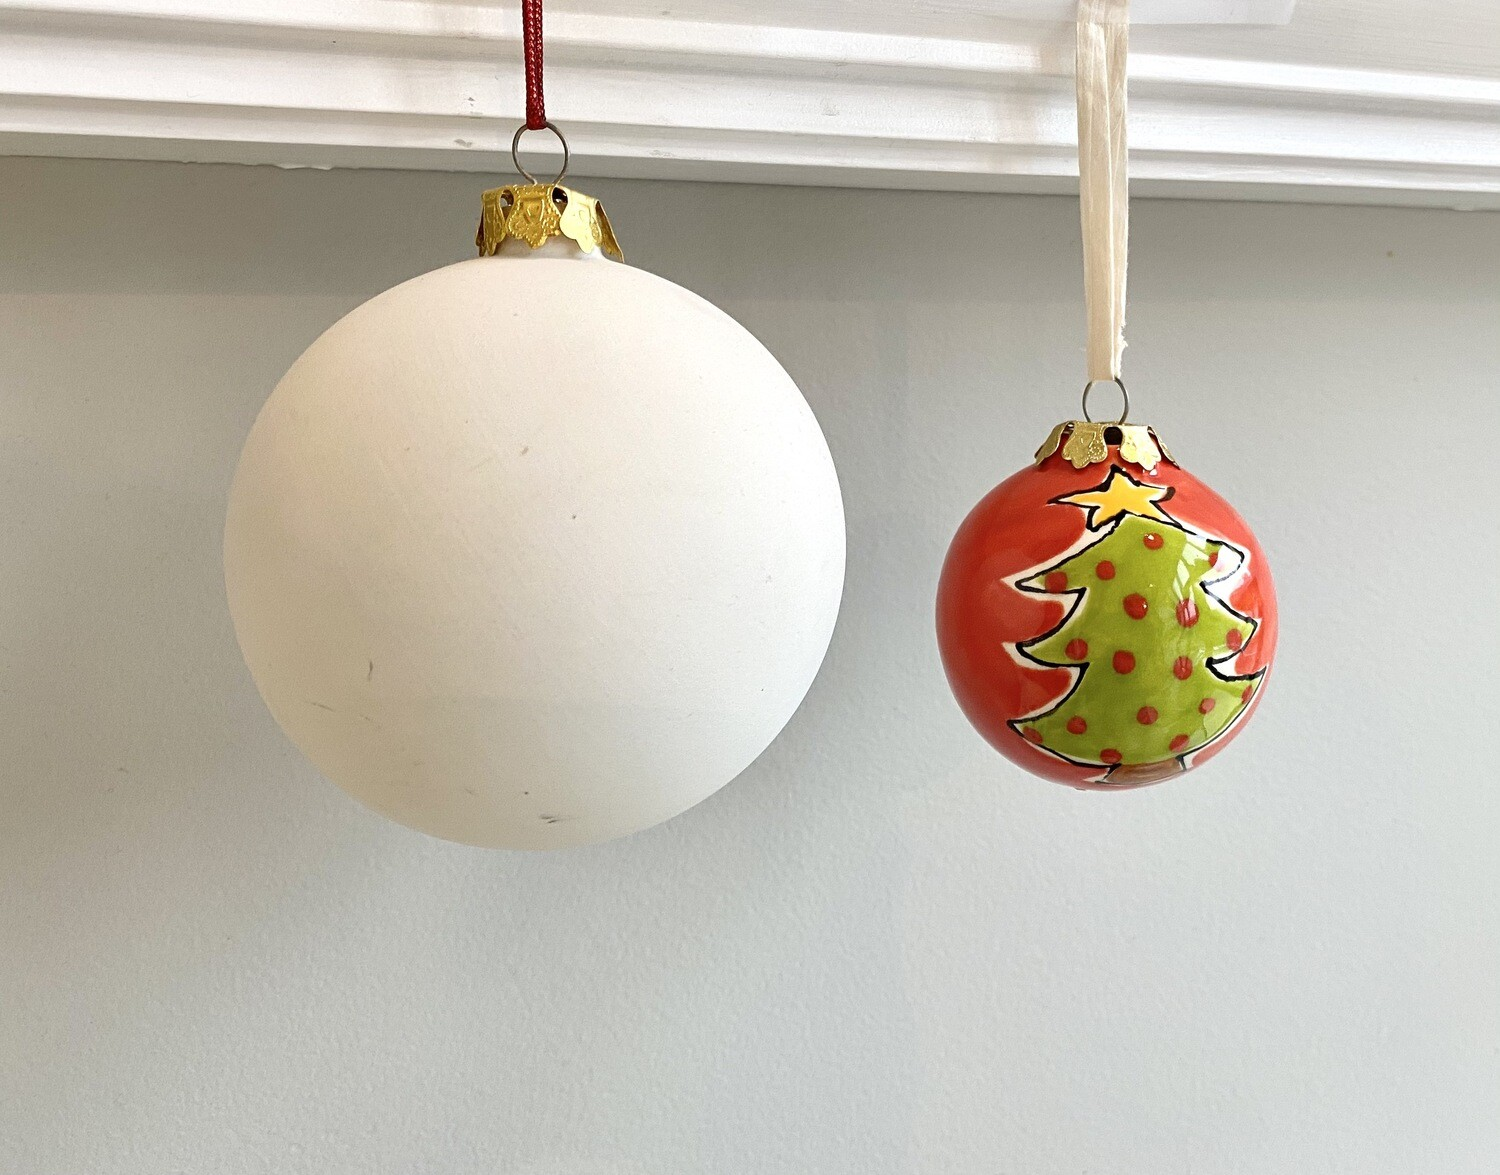 "Take Home 4"" Ball Ornament with Glazes- Pick Up Curbside"